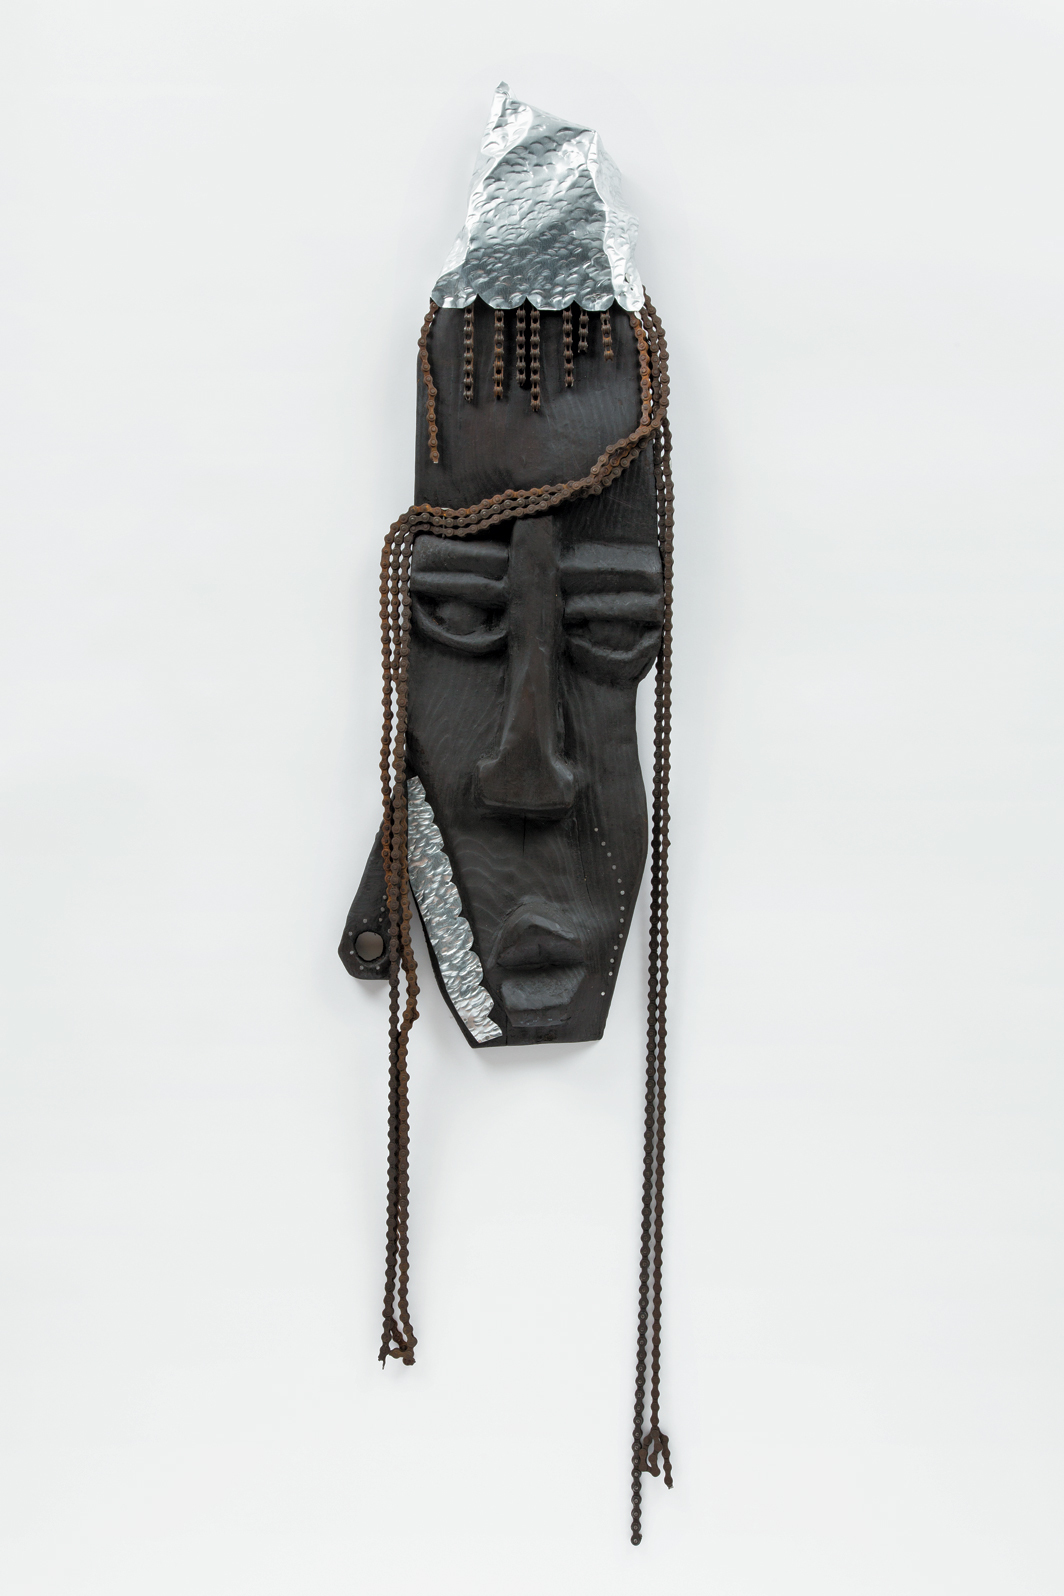 "Leilah Babirye, Nantege O'we Ngabi from the Kuchu Civet Cat Clan, 2020, wood, wax, aluminum, nails, found objects, 51 × 15 × 3""."